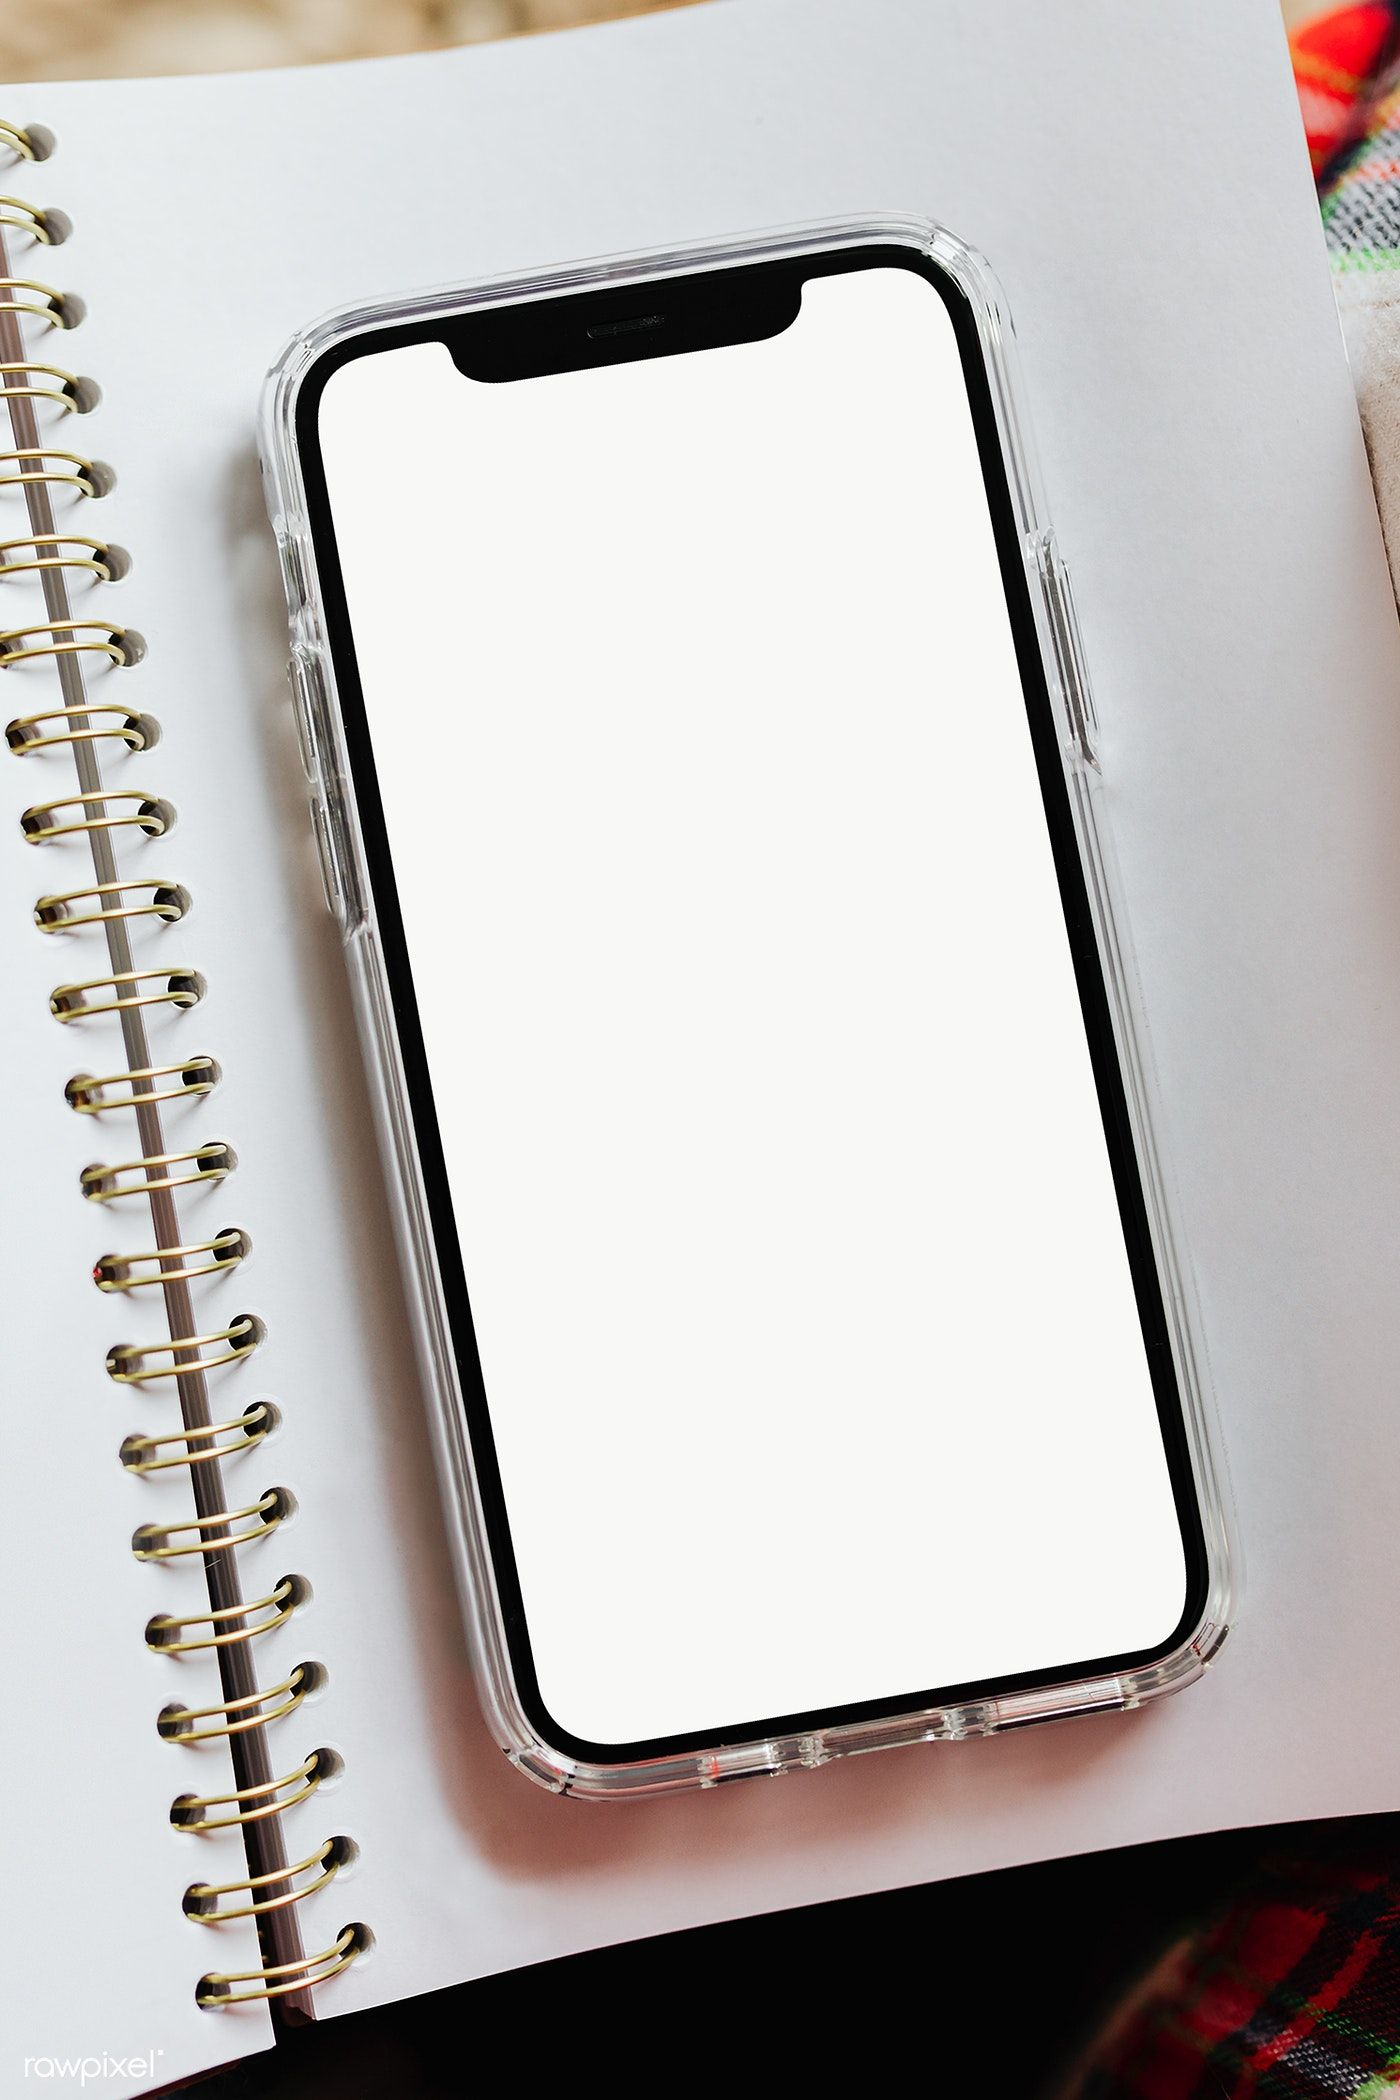 Download free png of Blank smartphone screen transparent png 2227334